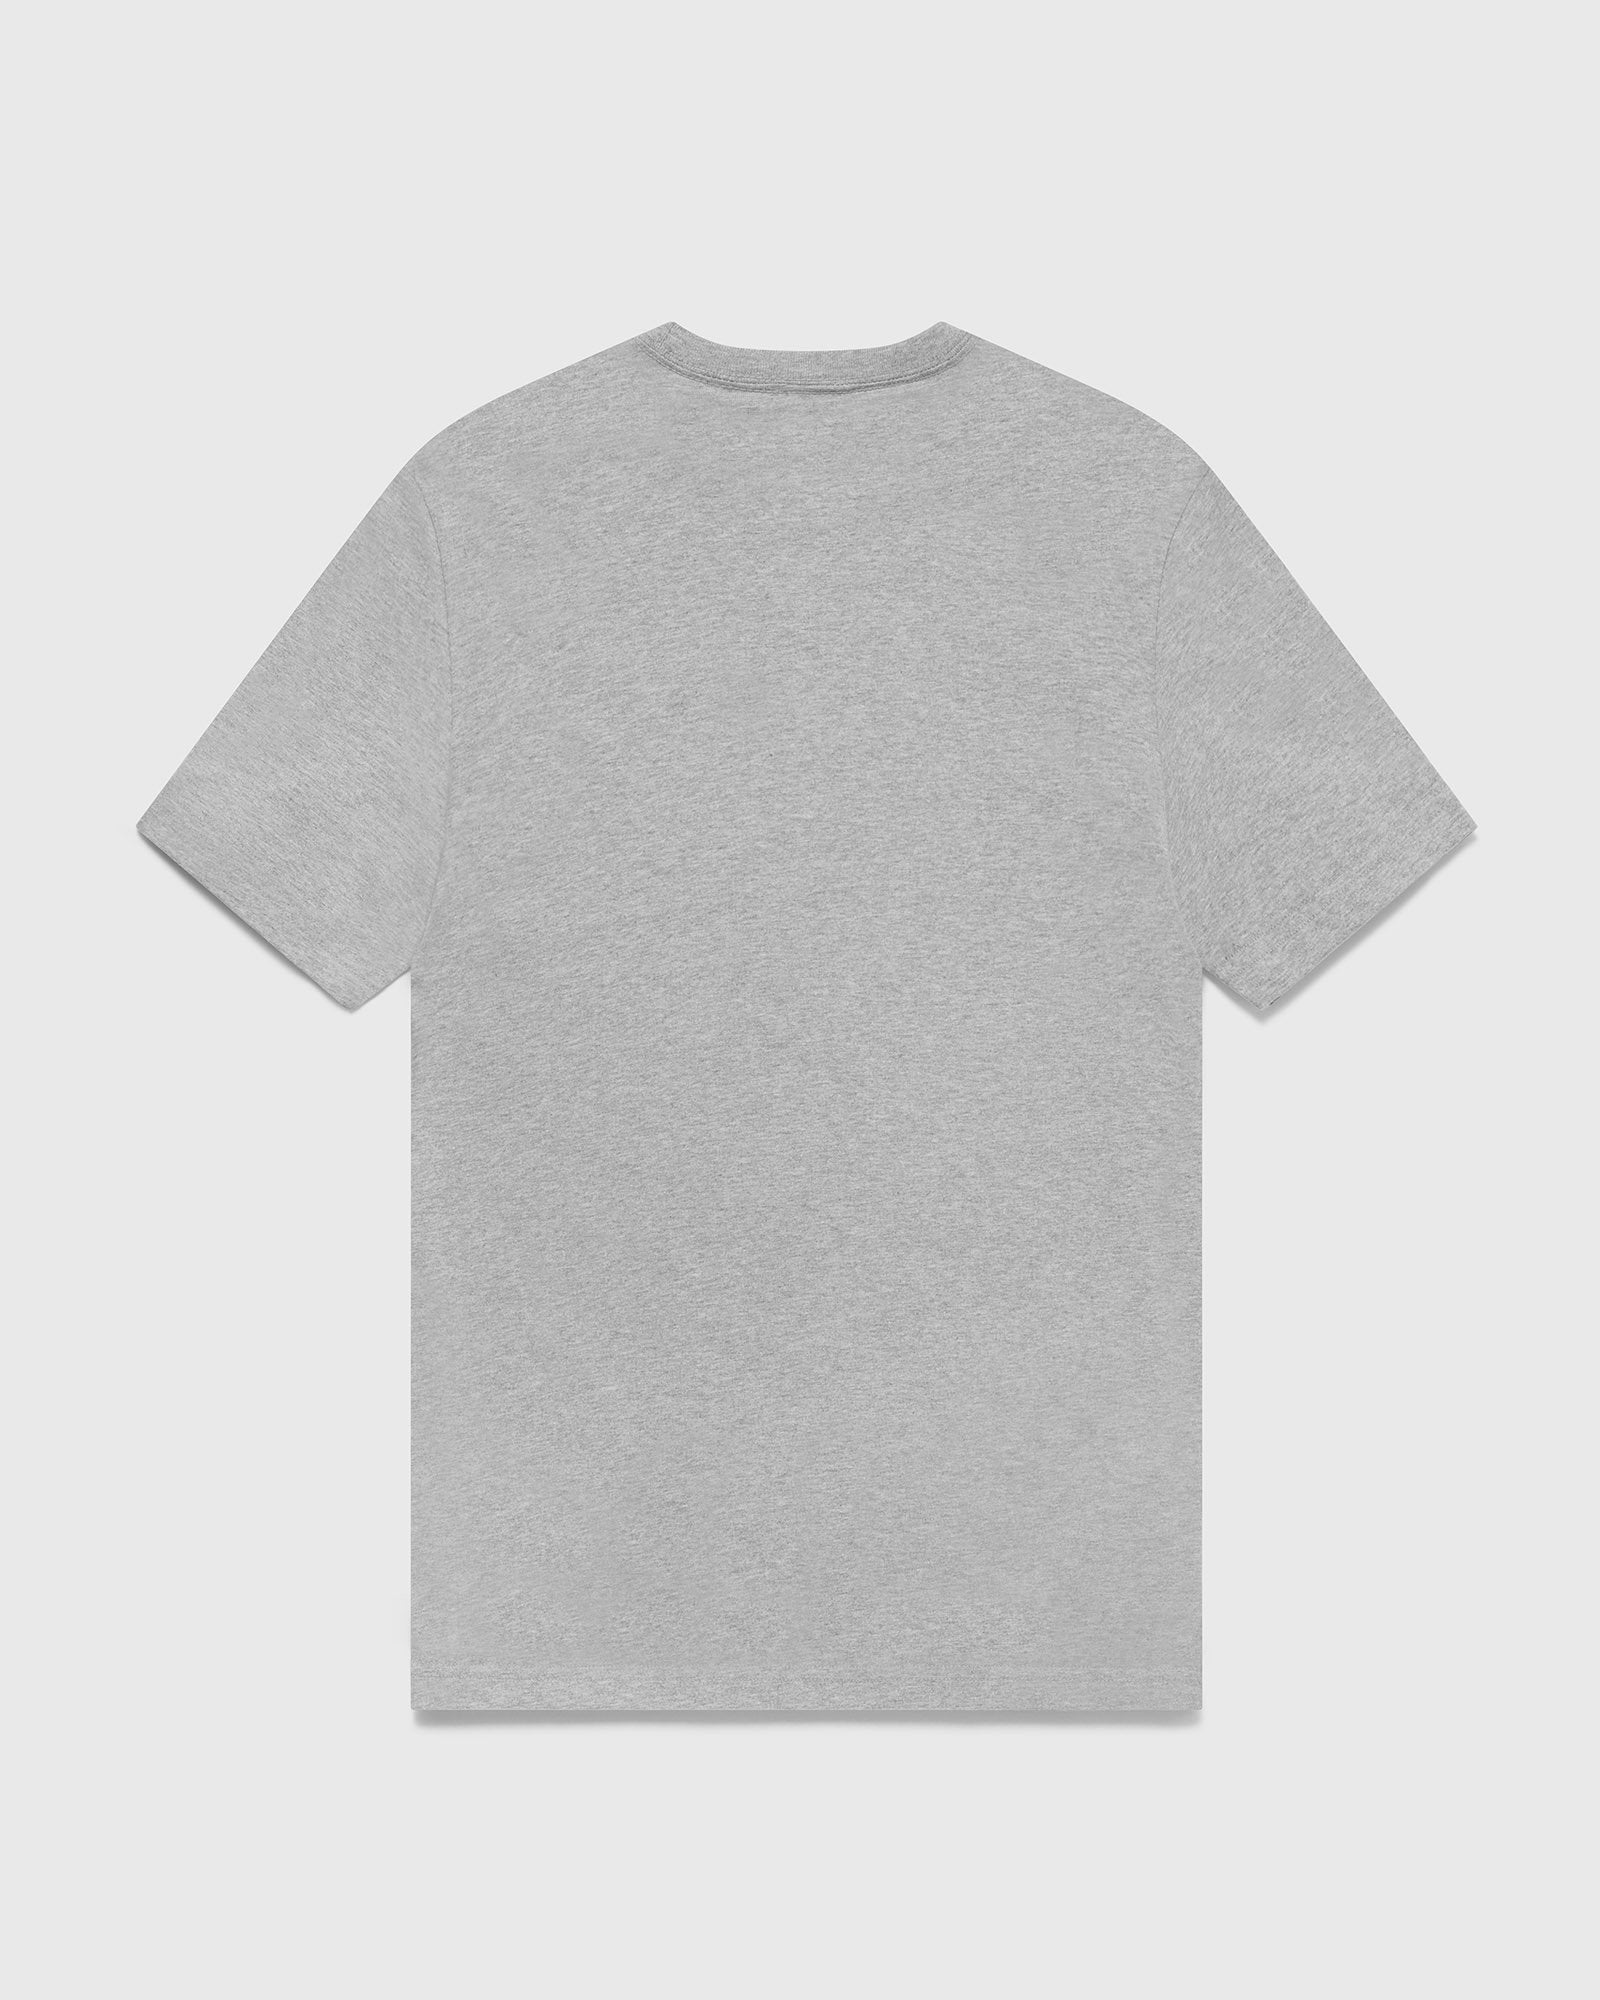 BLOOM T-SHIRT - HEATHER GREY IMAGE #2